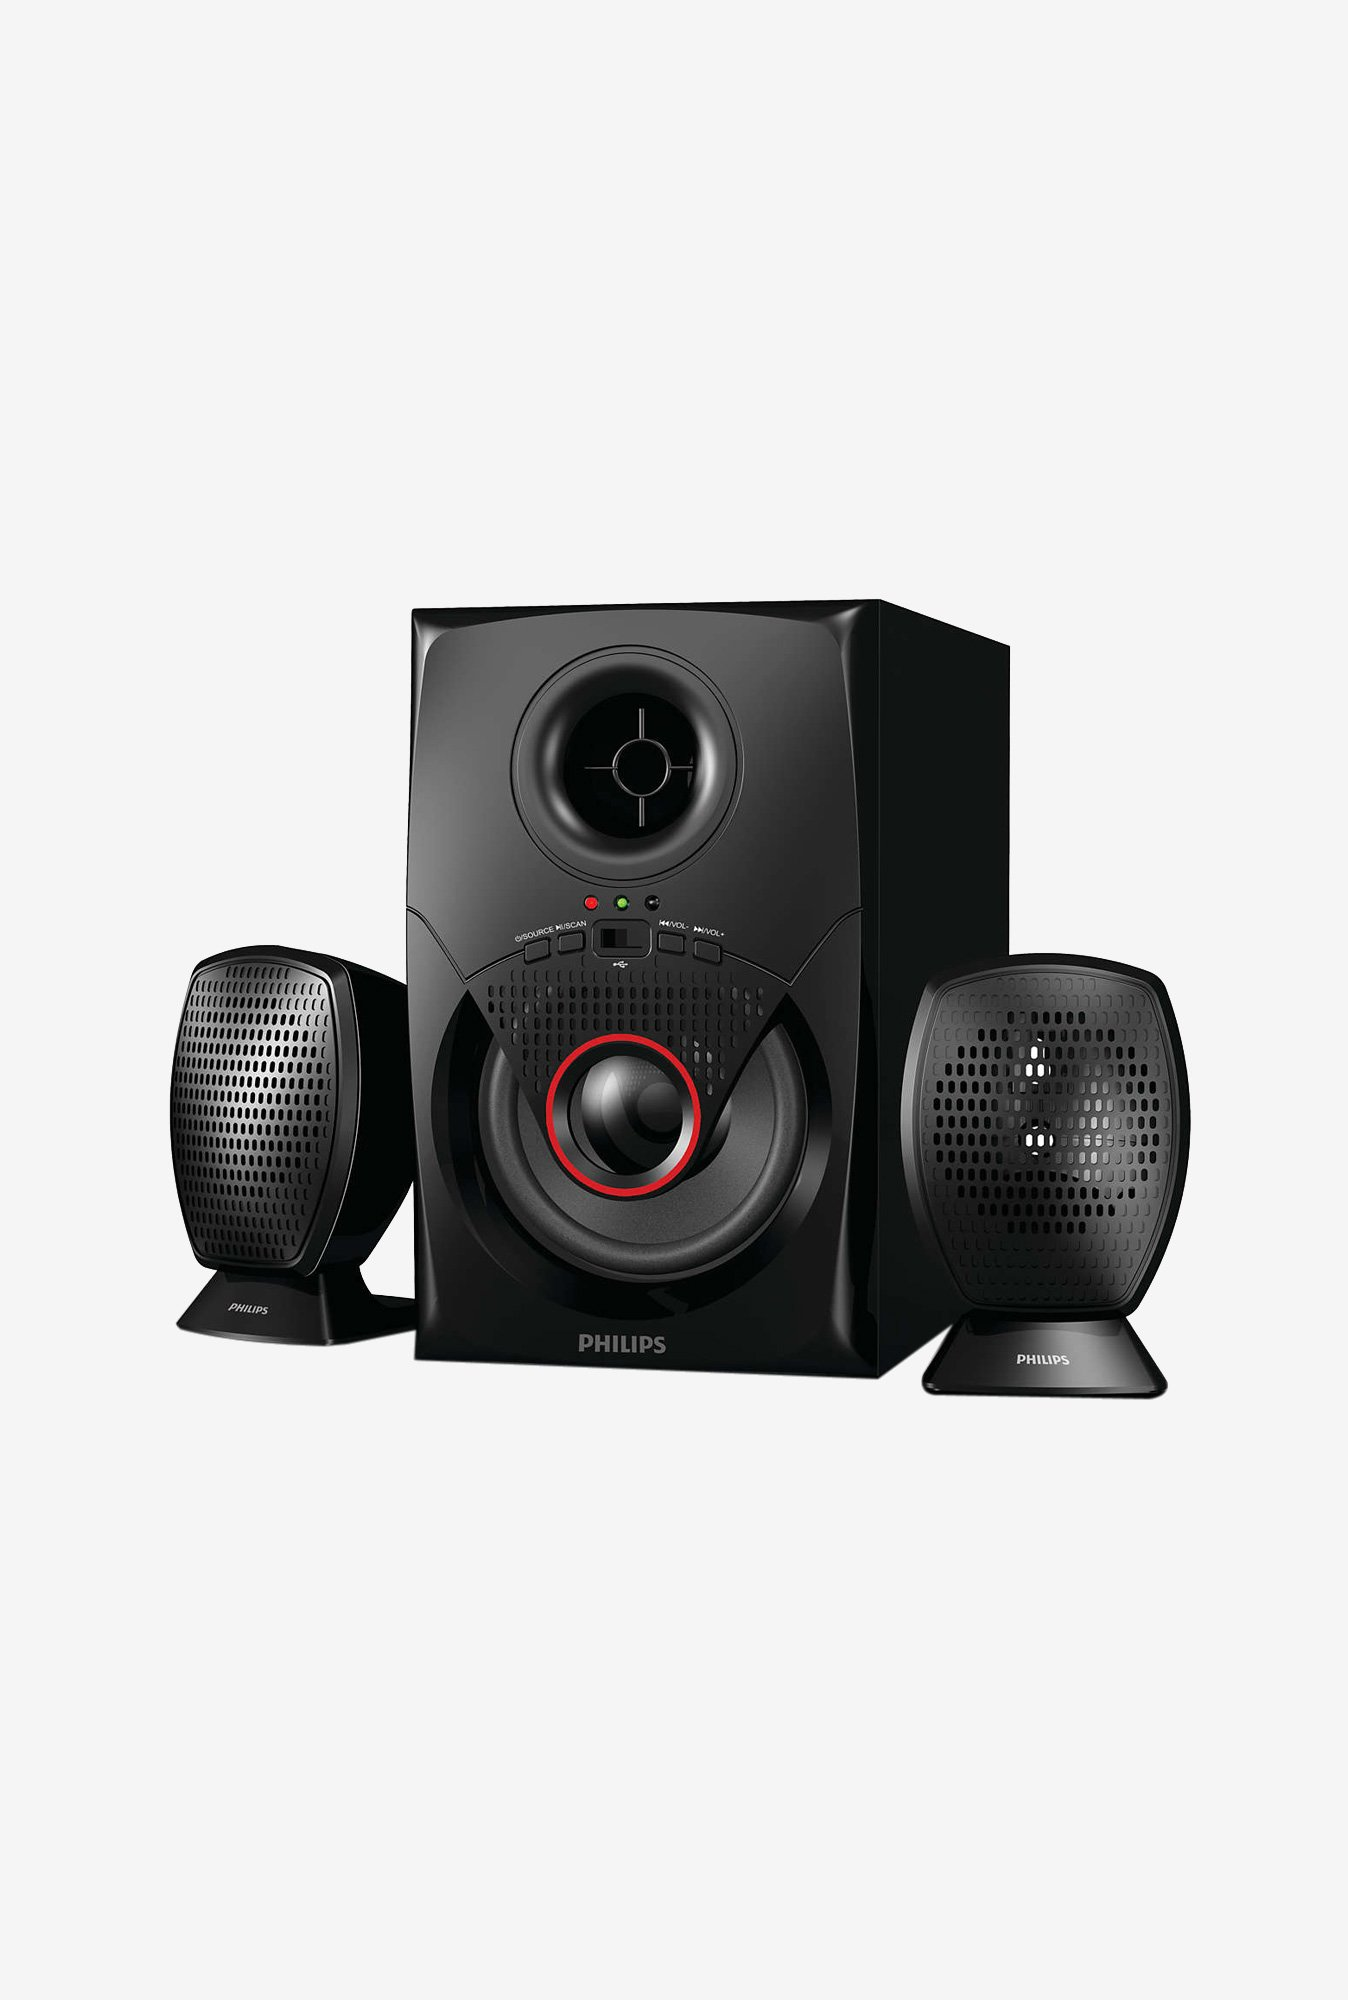 Philips MMS2020F 2.1 Multimedia Speakers (Black)